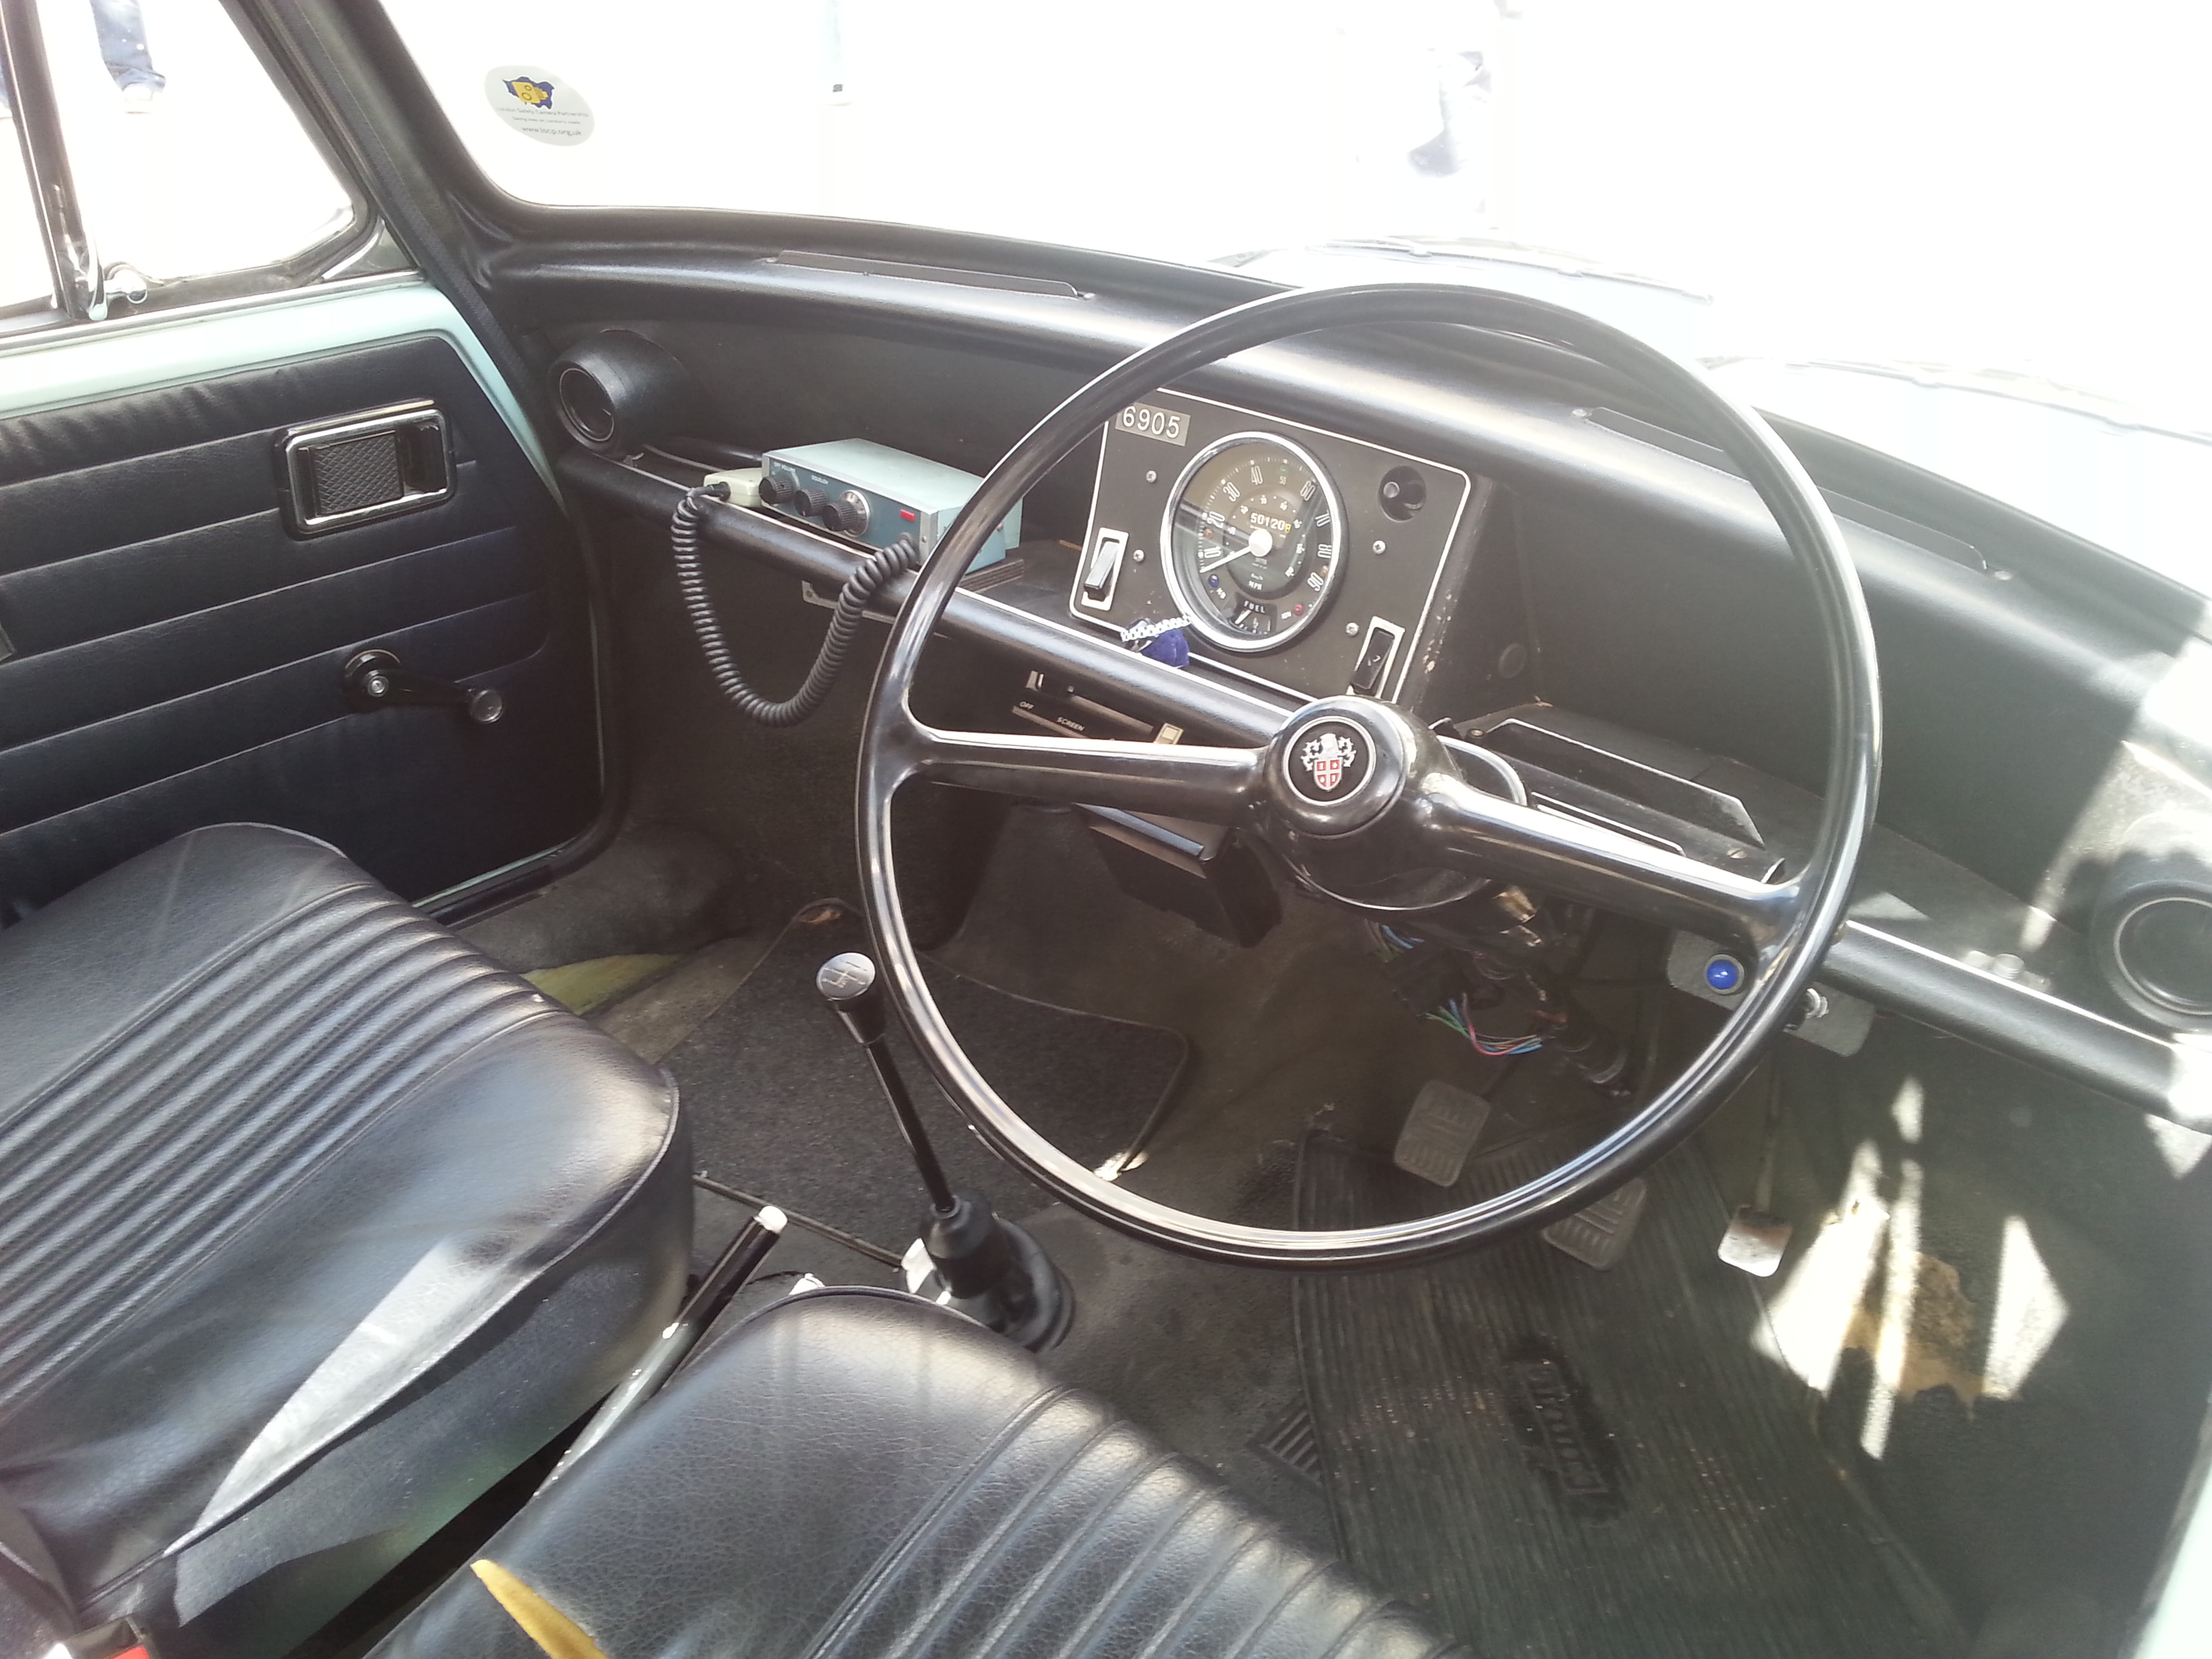 1973 austin 1100 police car interior i managed to get a pi flickr photo sharing. Black Bedroom Furniture Sets. Home Design Ideas